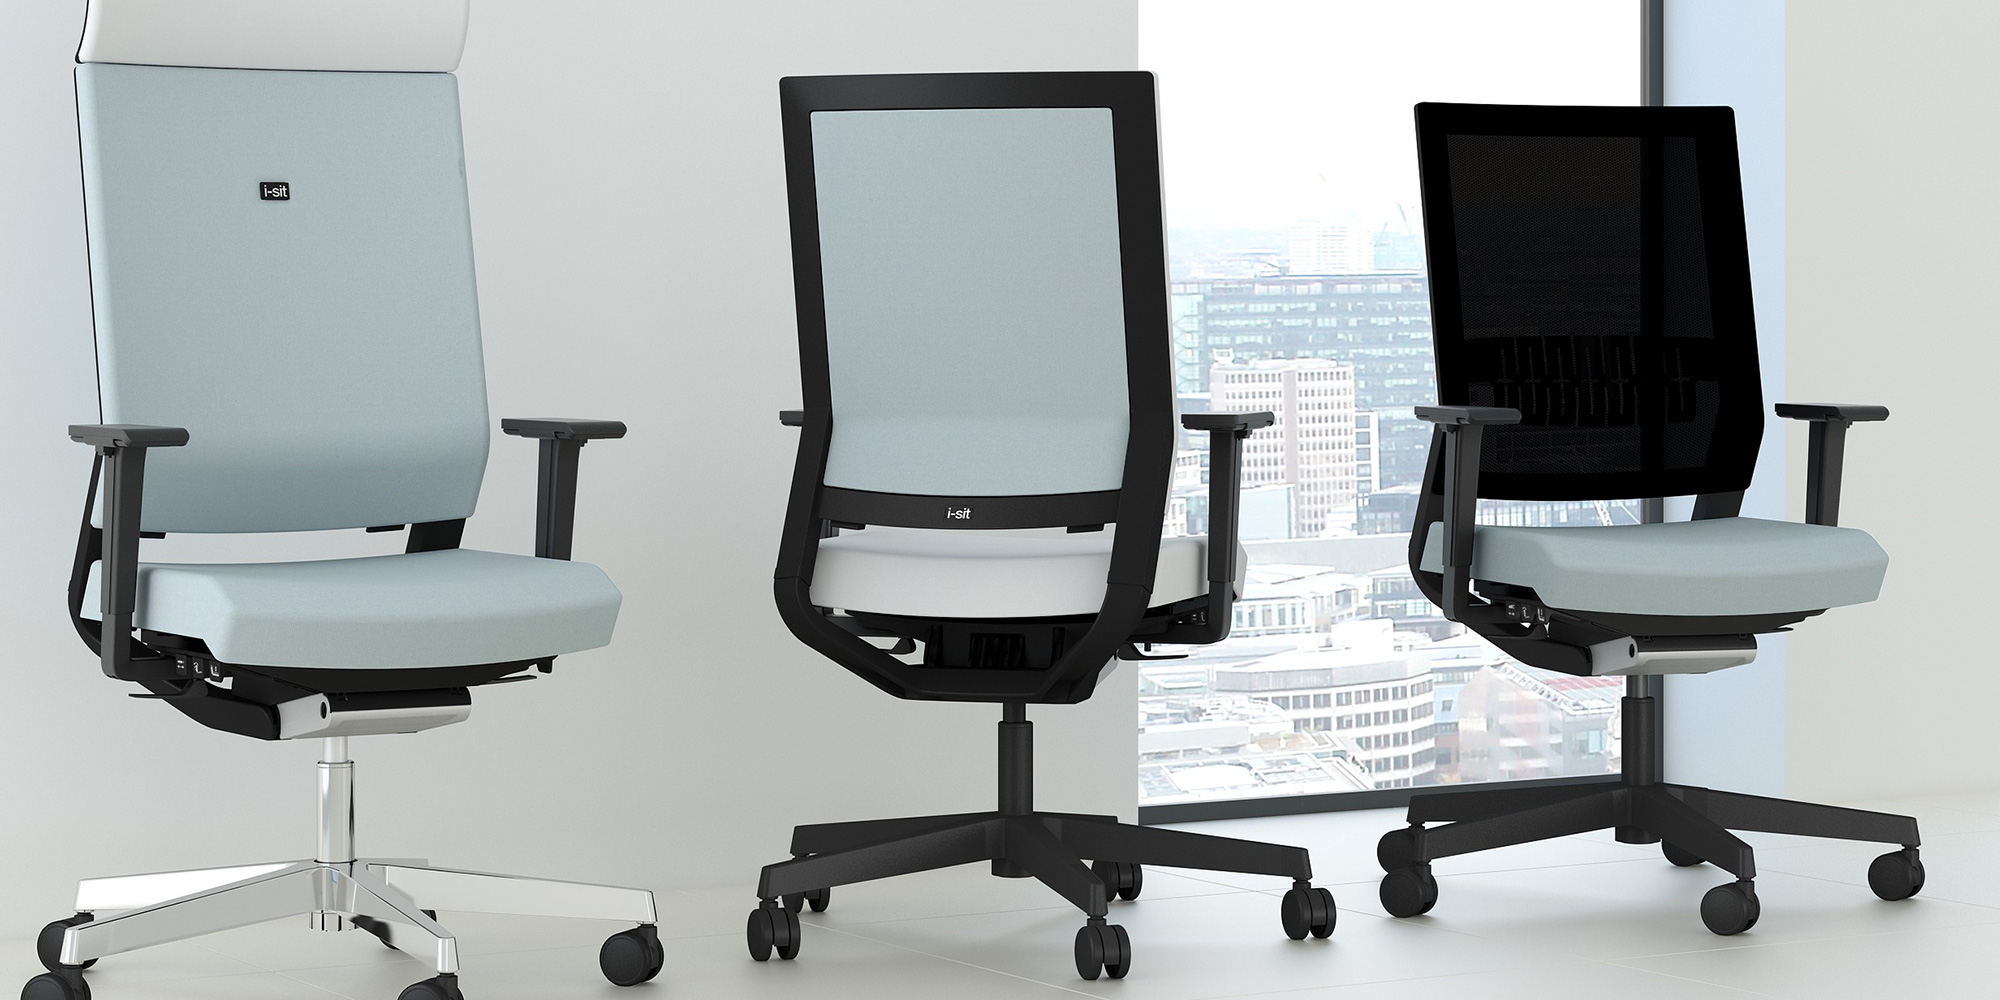 i-sit lite Task and Meeting Seating Roomset